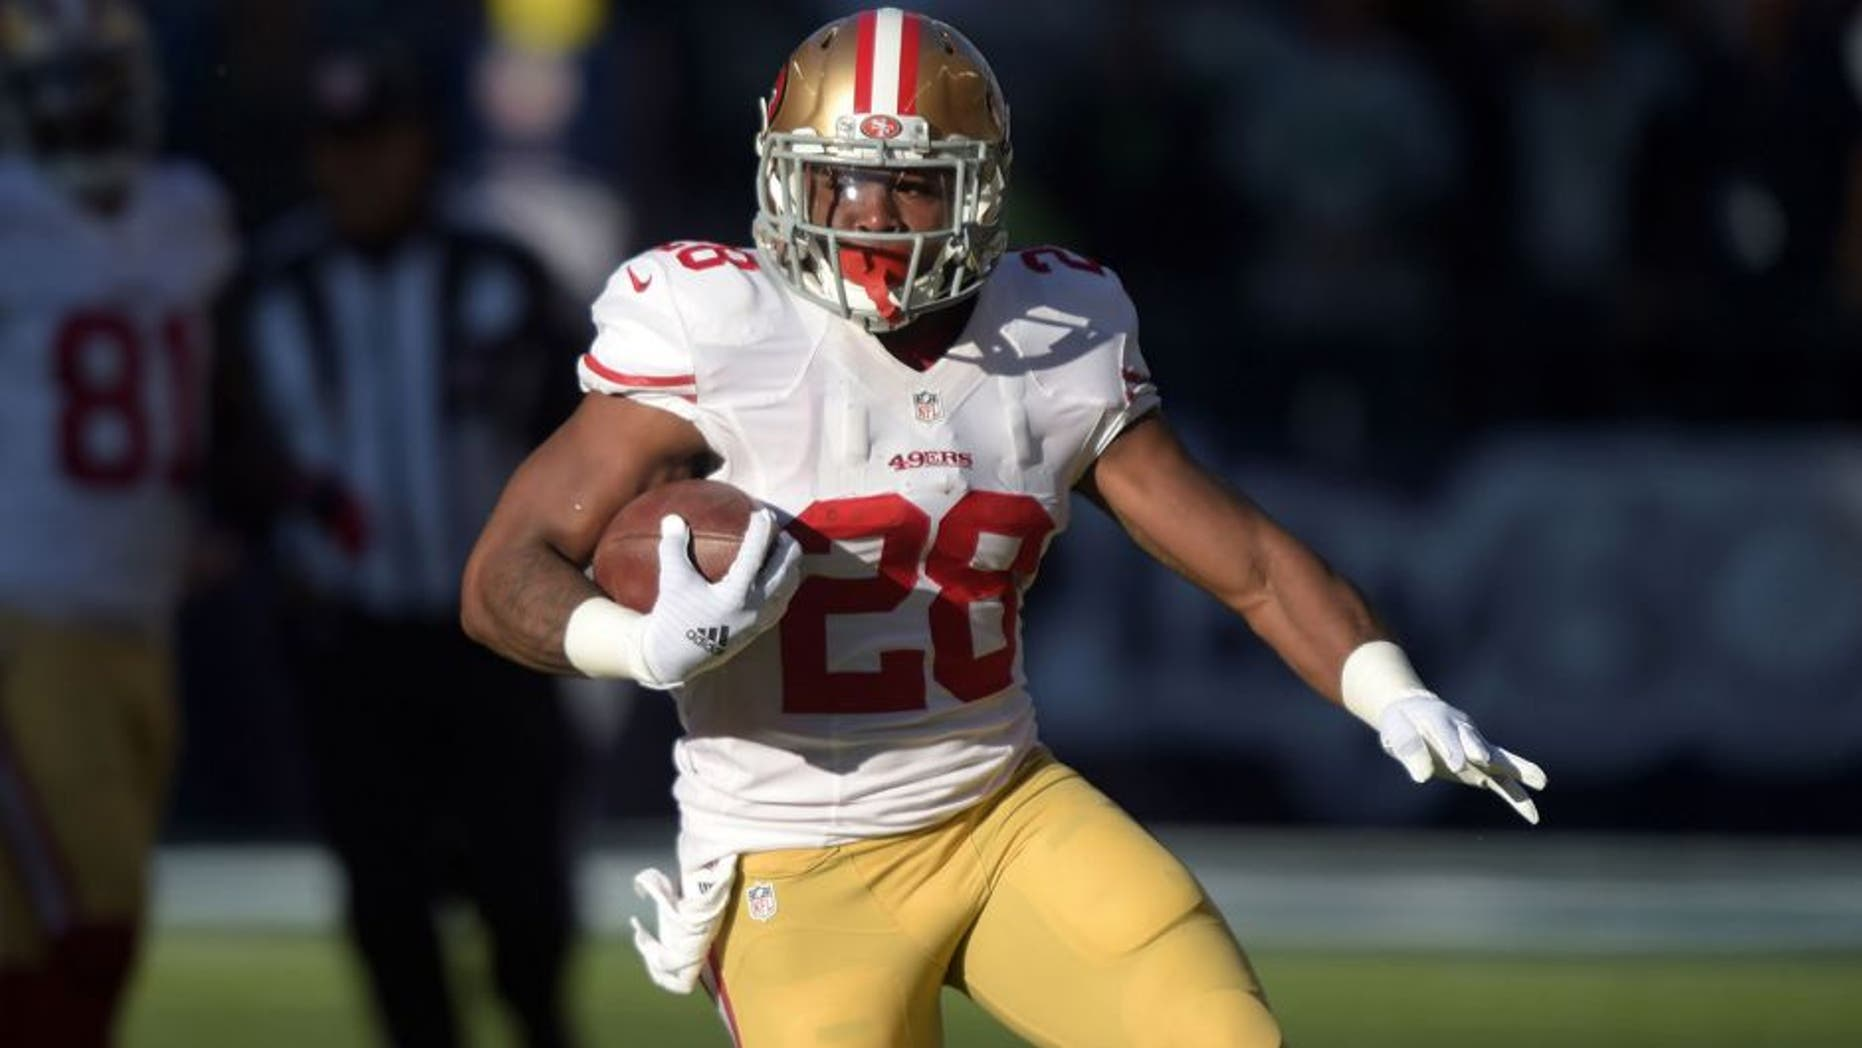 Dec 14, 2014; Seattle, WA, USA; San Francisco 49ers running back Carlos Hyde (28) carries the ball on a 289-yard run in the first quarter against the Seattle Seahawks at CenturyLink Field. Mandatory Credit: Kirby Lee-USA TODAY Sports